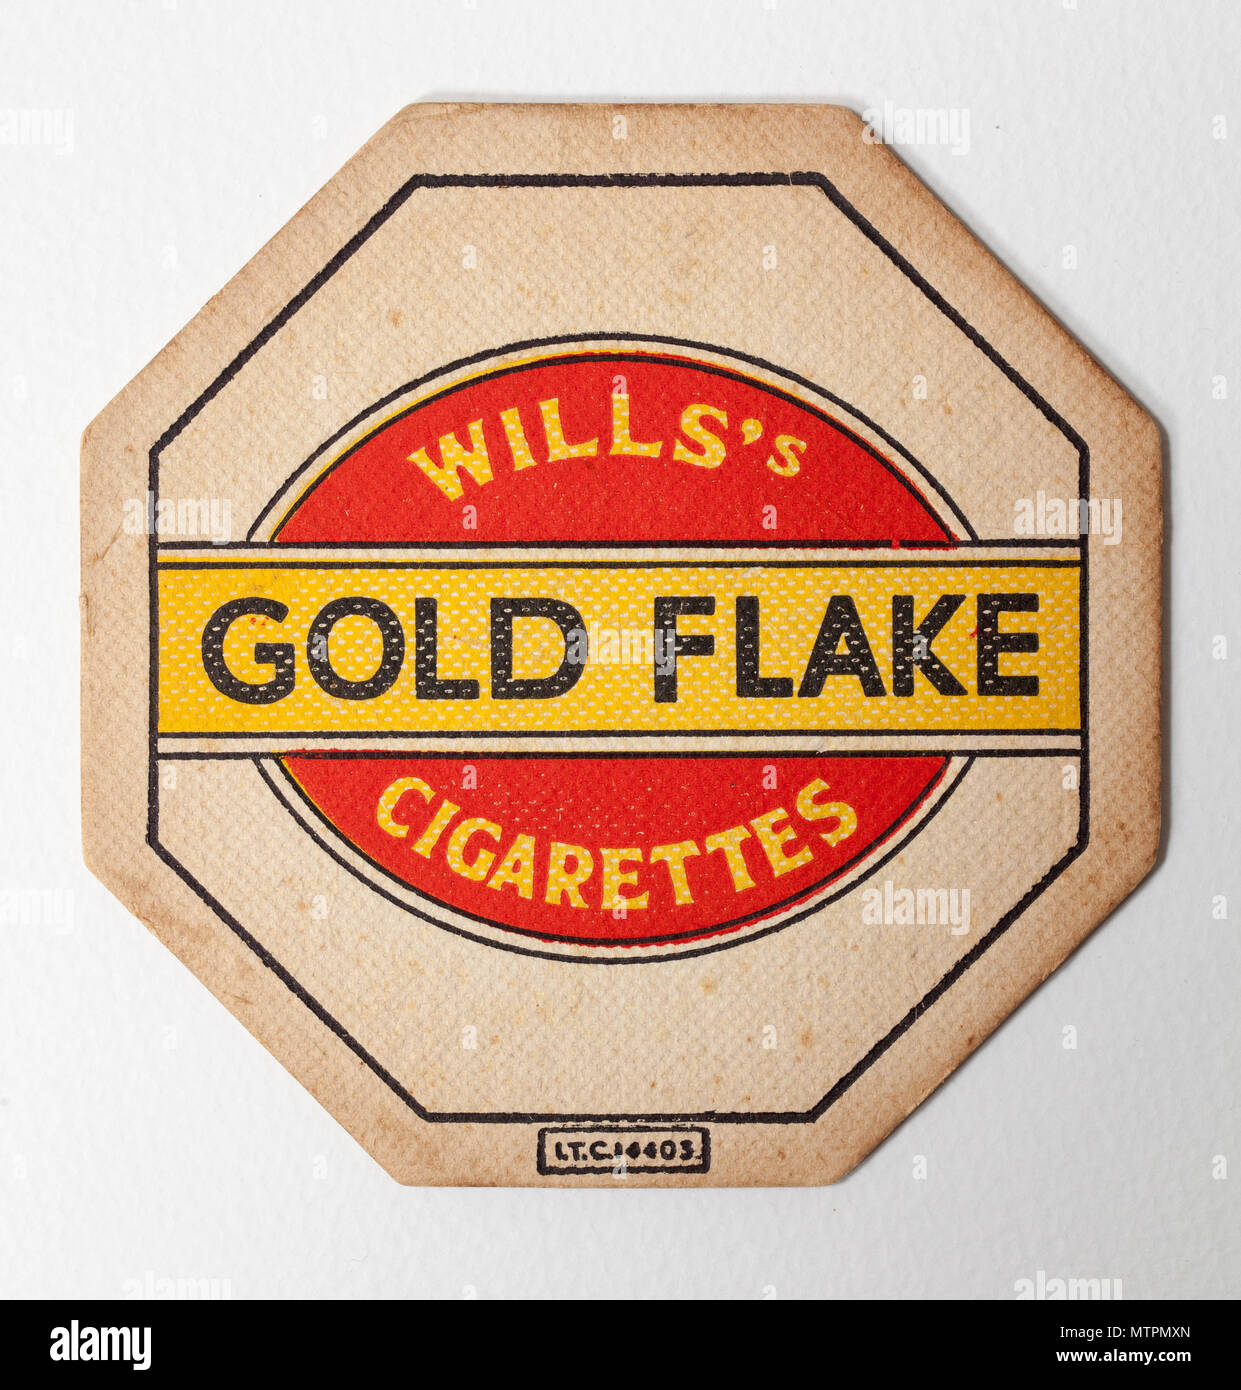 Vintage British Beer Mat Advertising Wills Gold Flake Cigarettes - Stock Image